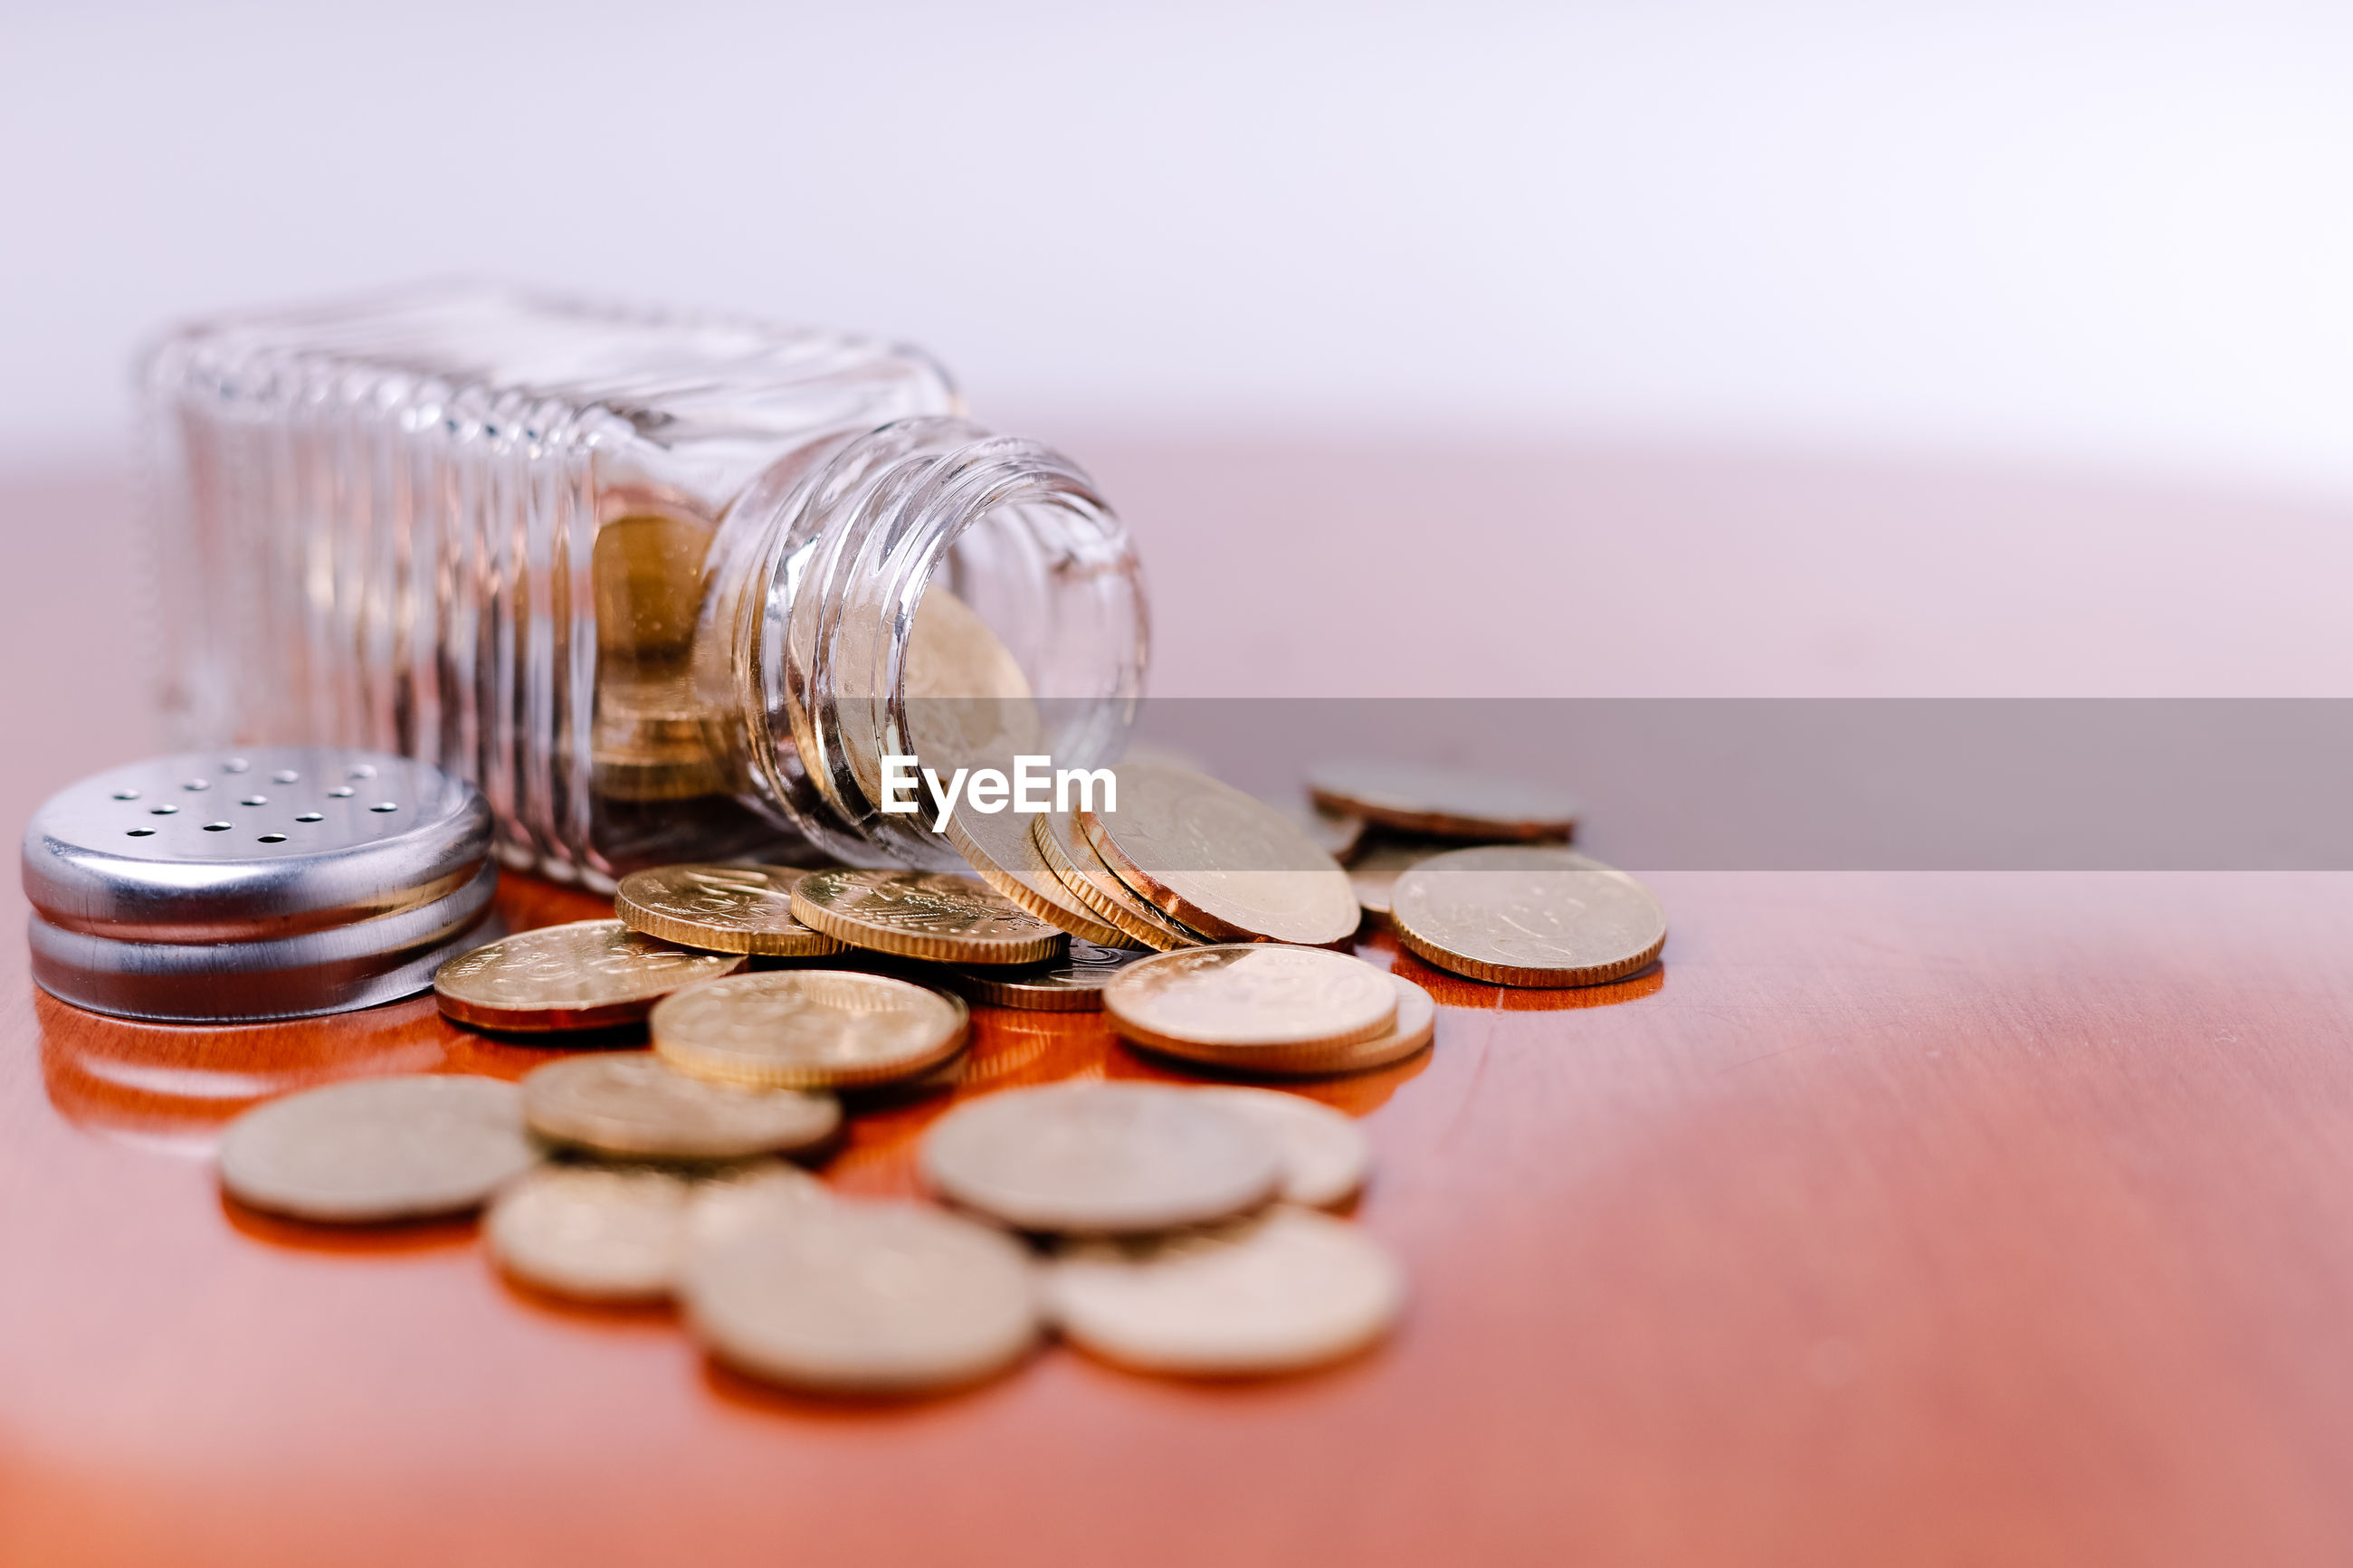 CLOSE-UP OF COINS IN CONTAINER